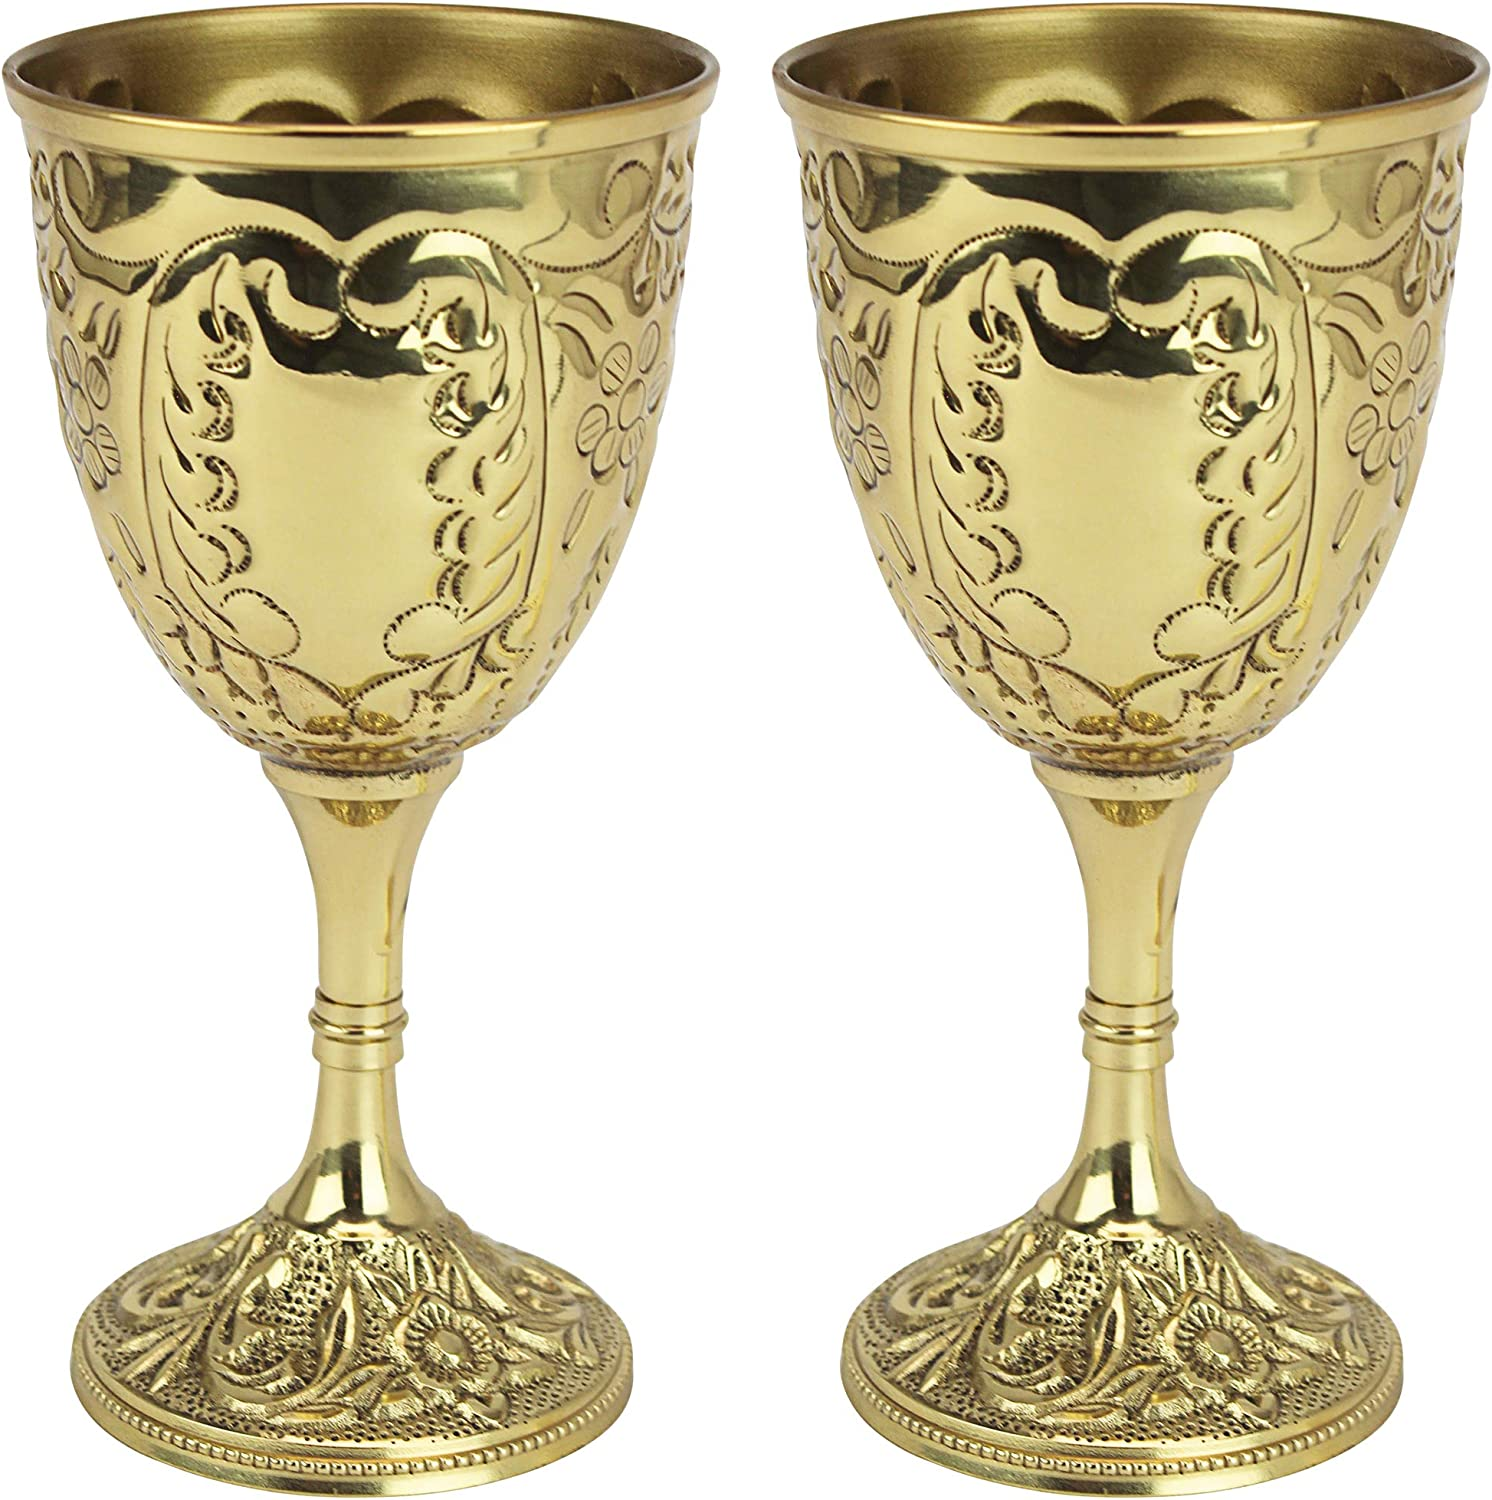 Design Toscano The King's Royal Chalice Cup, 6 Inch, Set of Two, Embossed Brass,